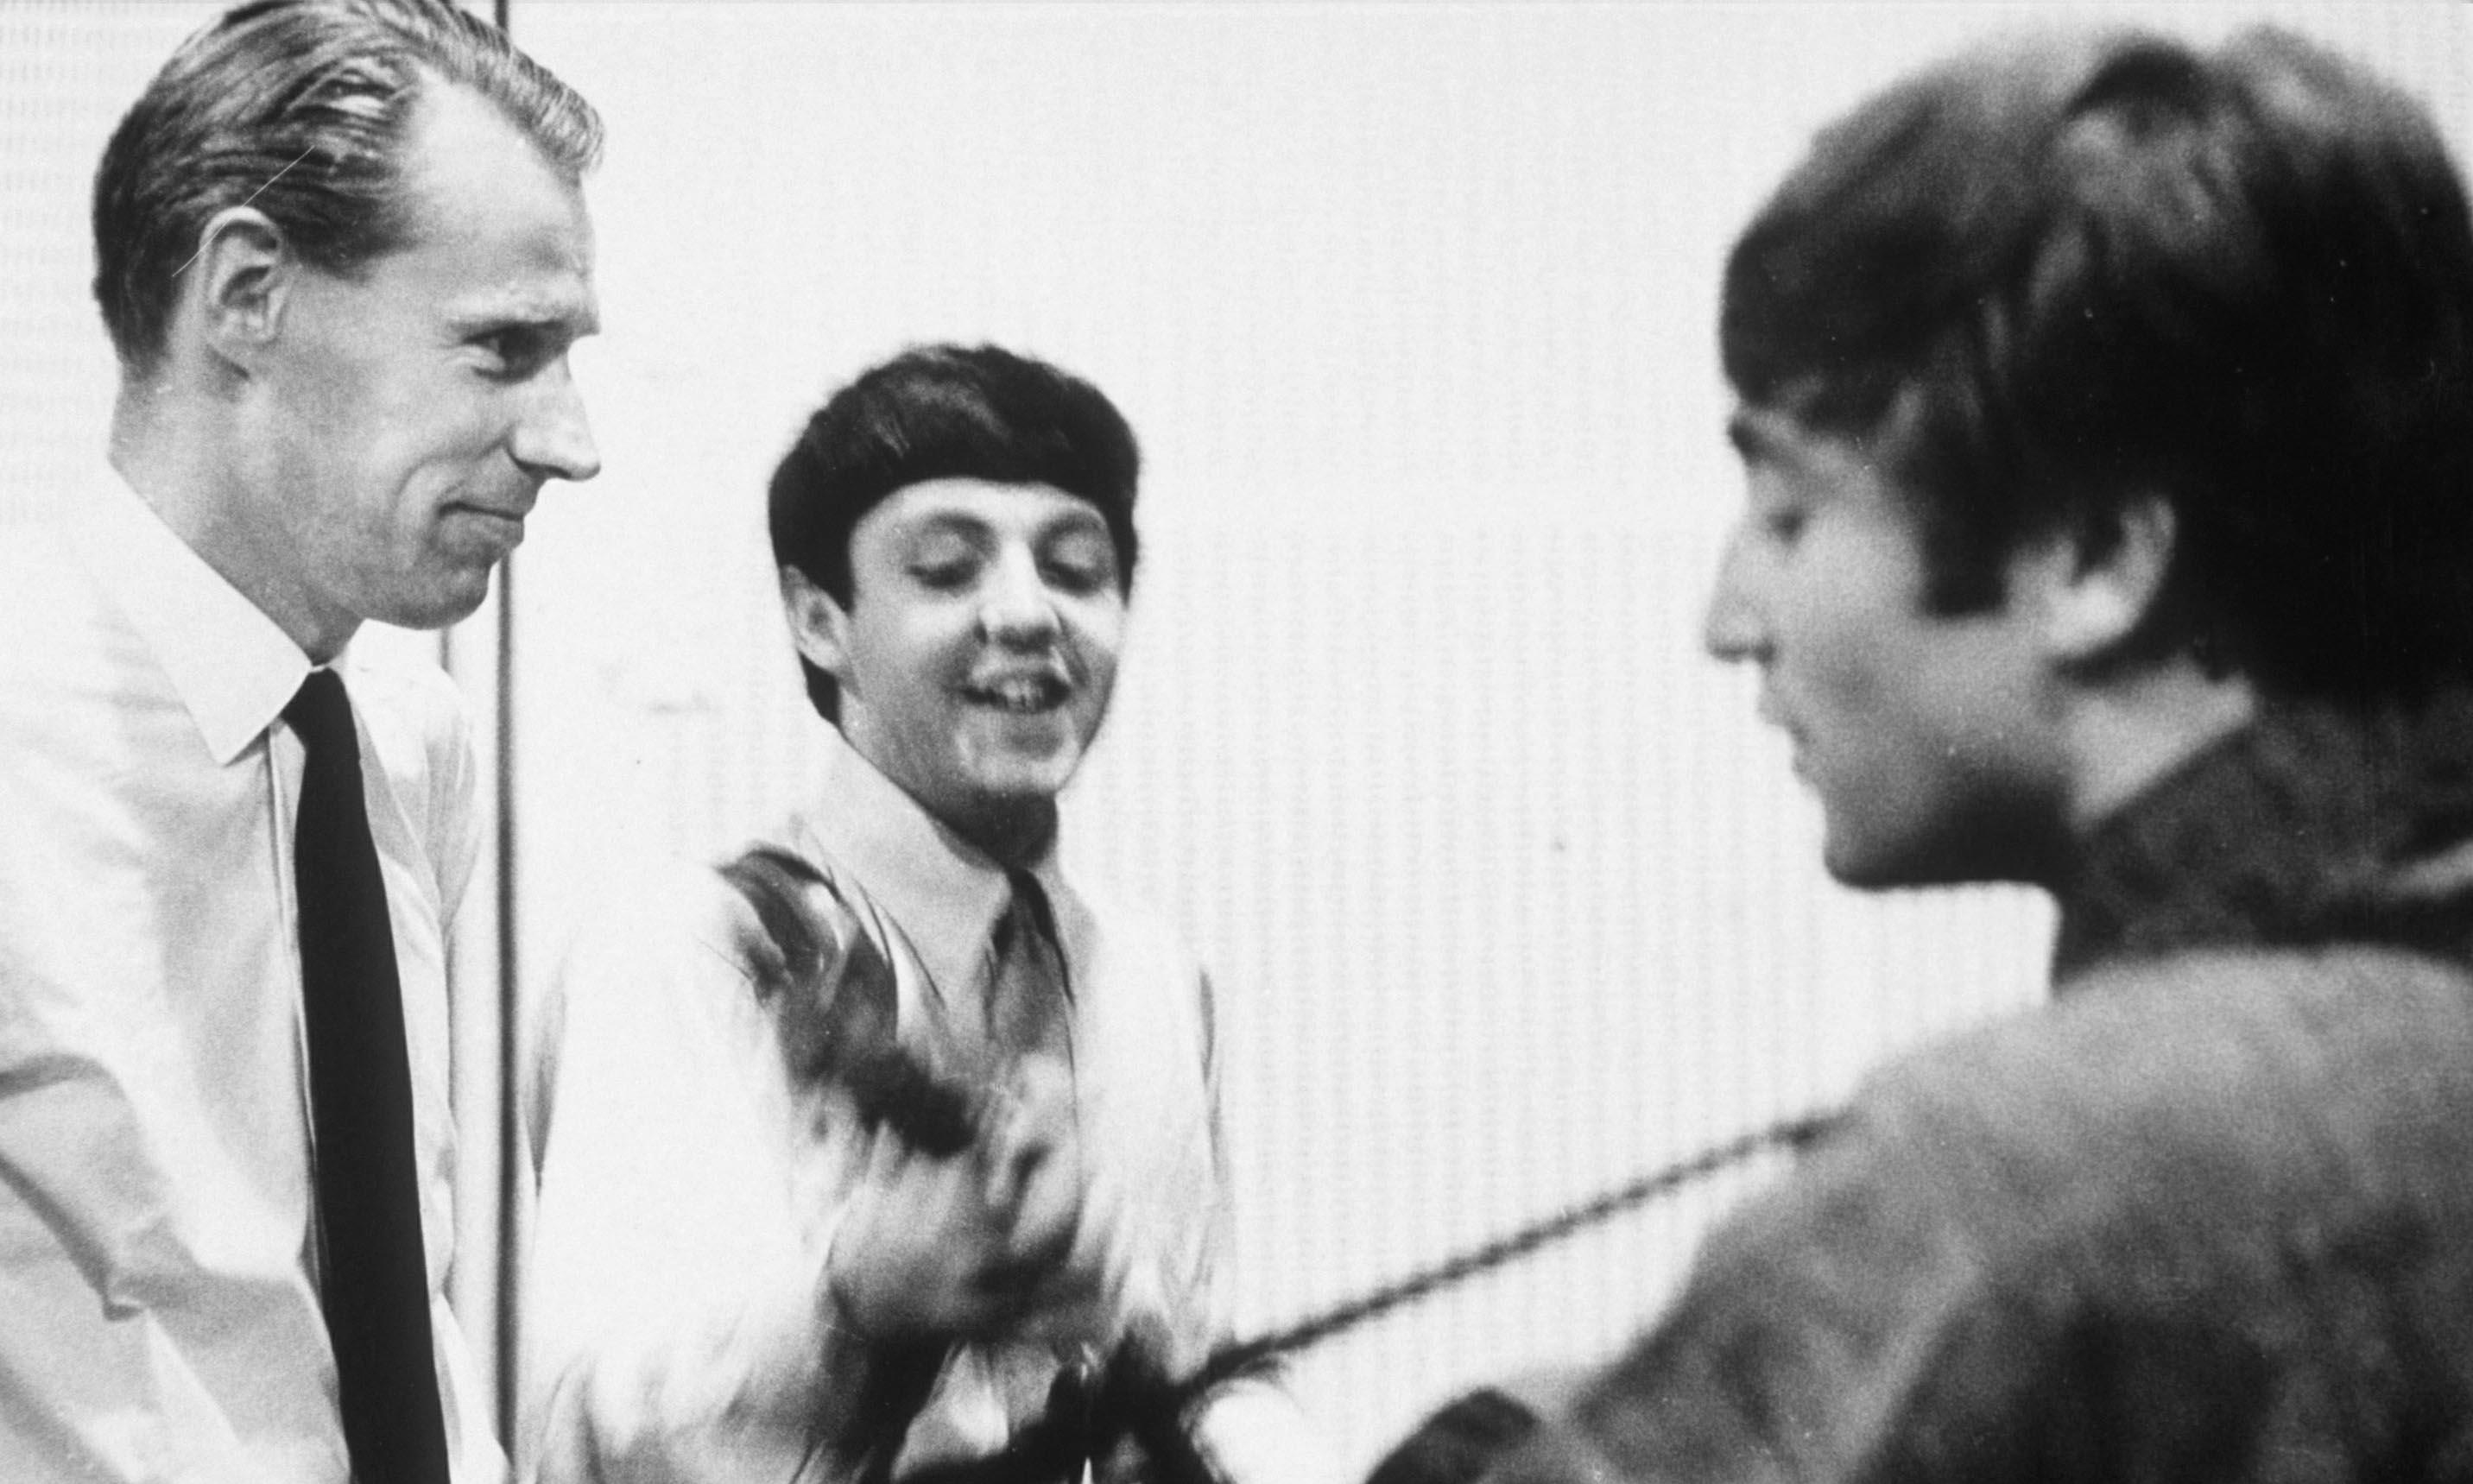 He read the news all day, oh boy: how Beatles 'froze out' George Martin on White Album